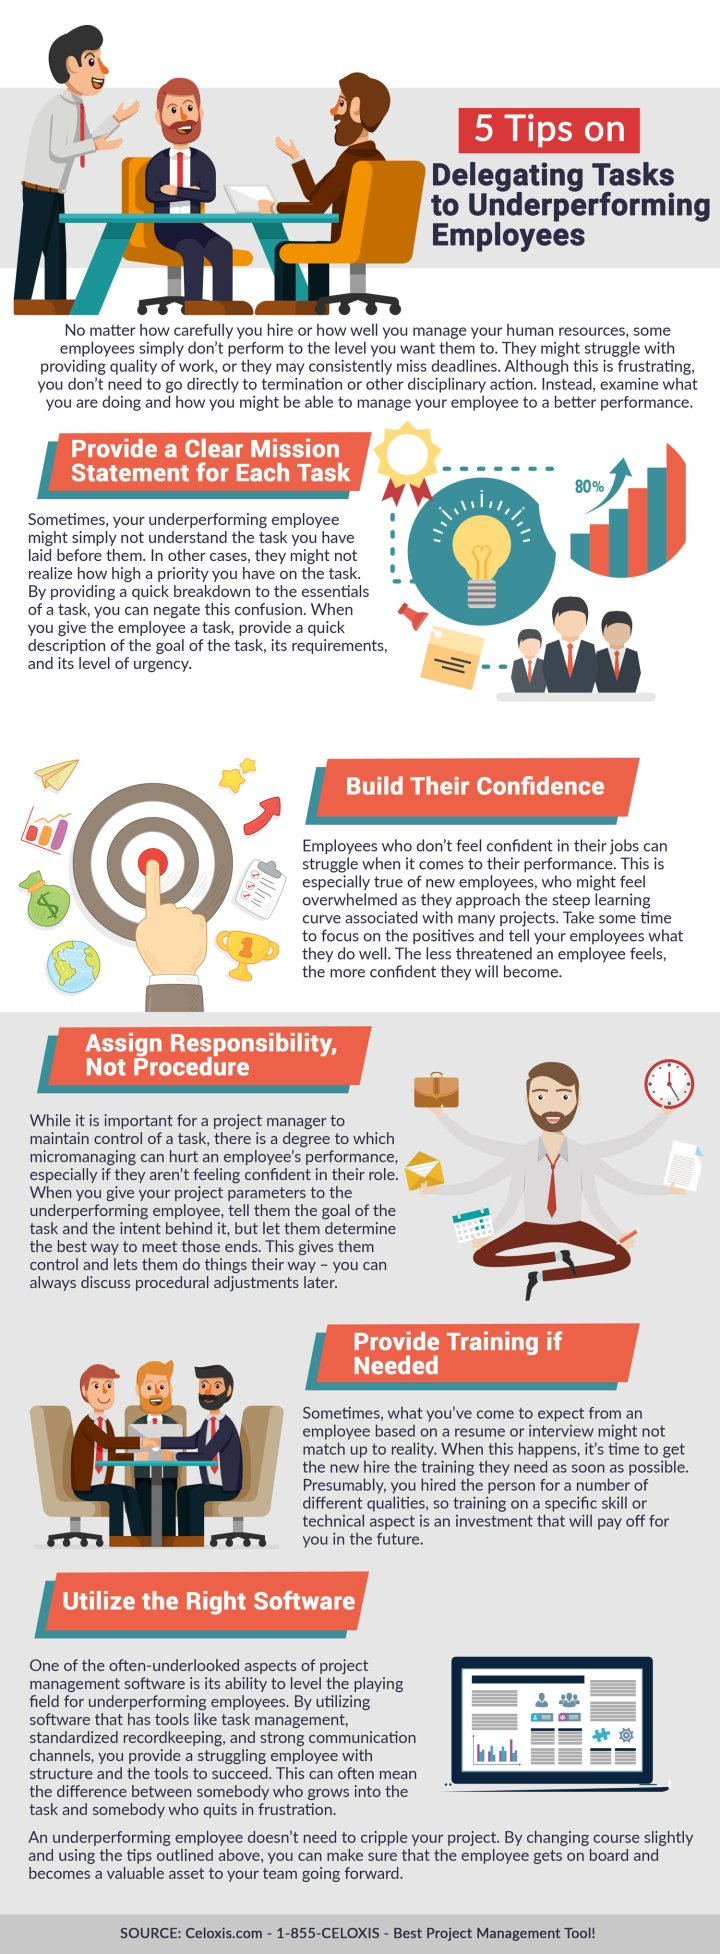 INFOGRAPHIC: 5 Tips on Delegating Tasks to Underperforming Employees